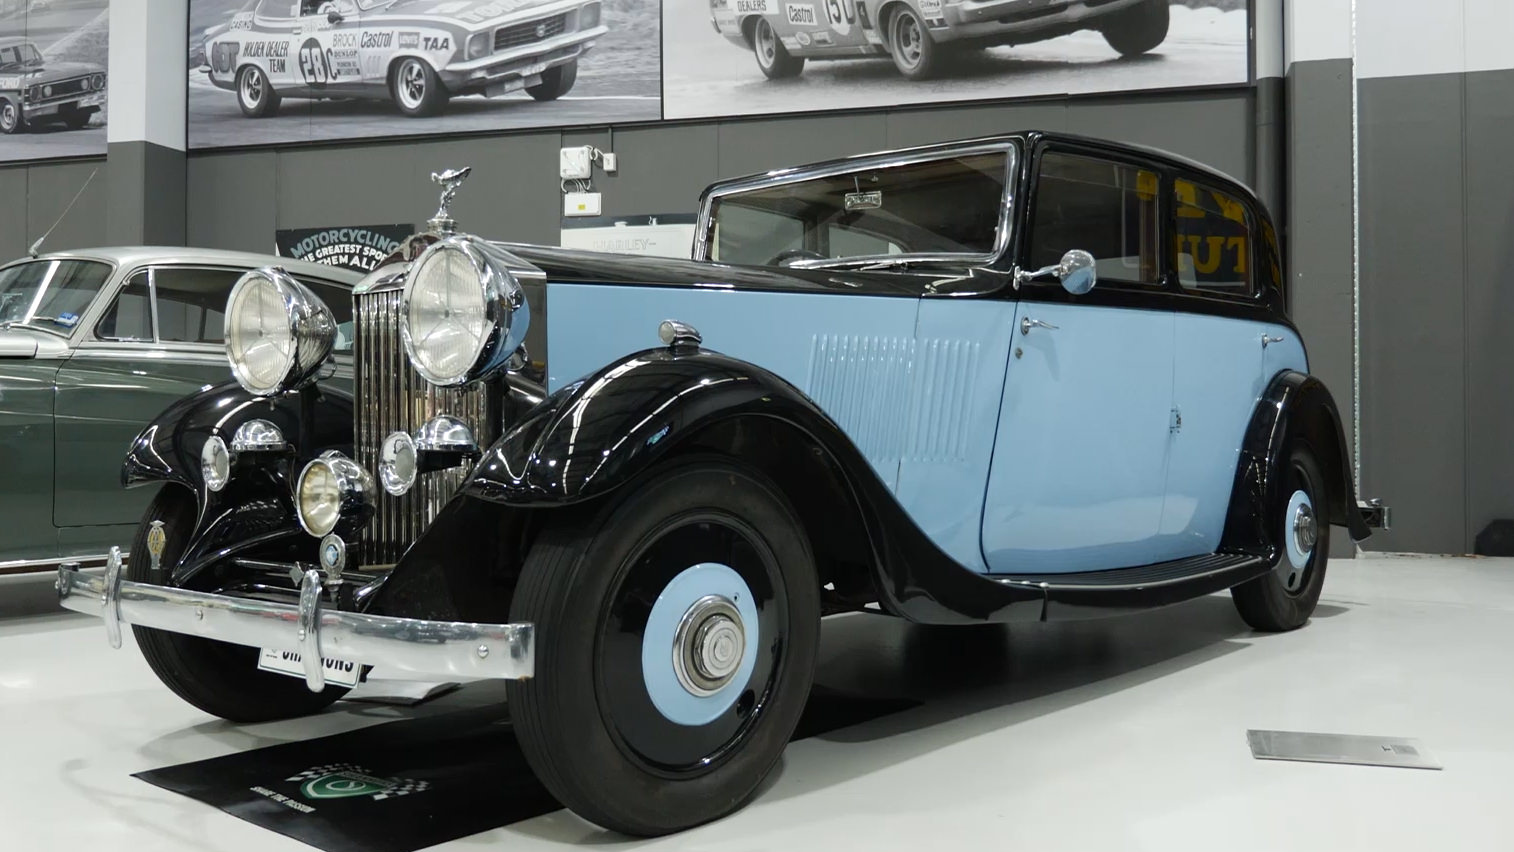 1932 Rolls-Royce 20/25 HP 'Thrupp & Maberly' Saloon - 2021 Shannons Autumn Timed Online Auction